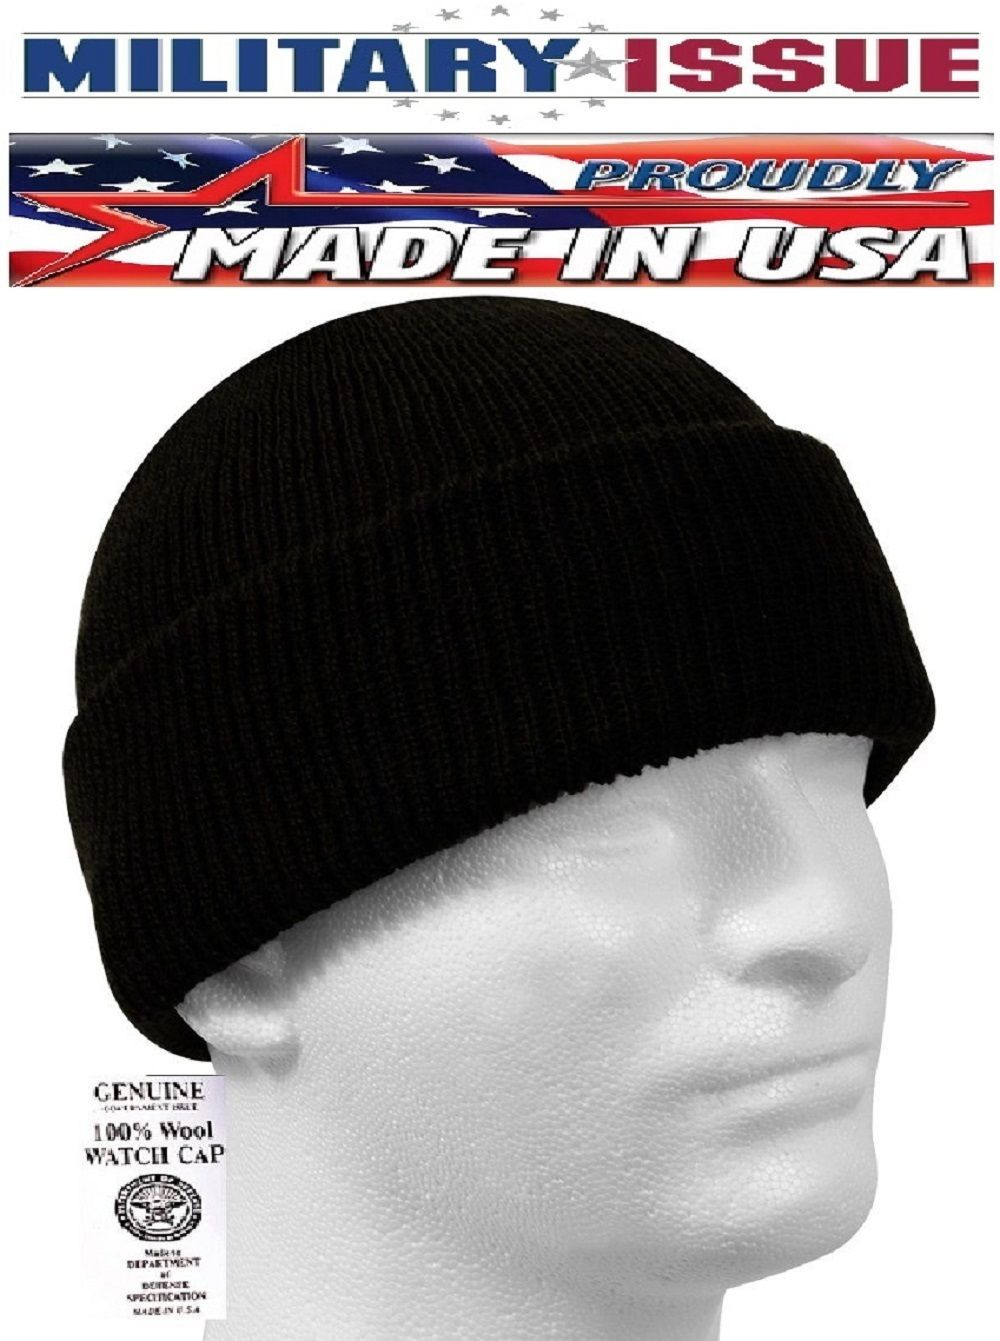 d264c6dd5aa Black Military Issue Watch Cap 100% Wool Skiing Beanie Hat Wool Watch Cap  8492